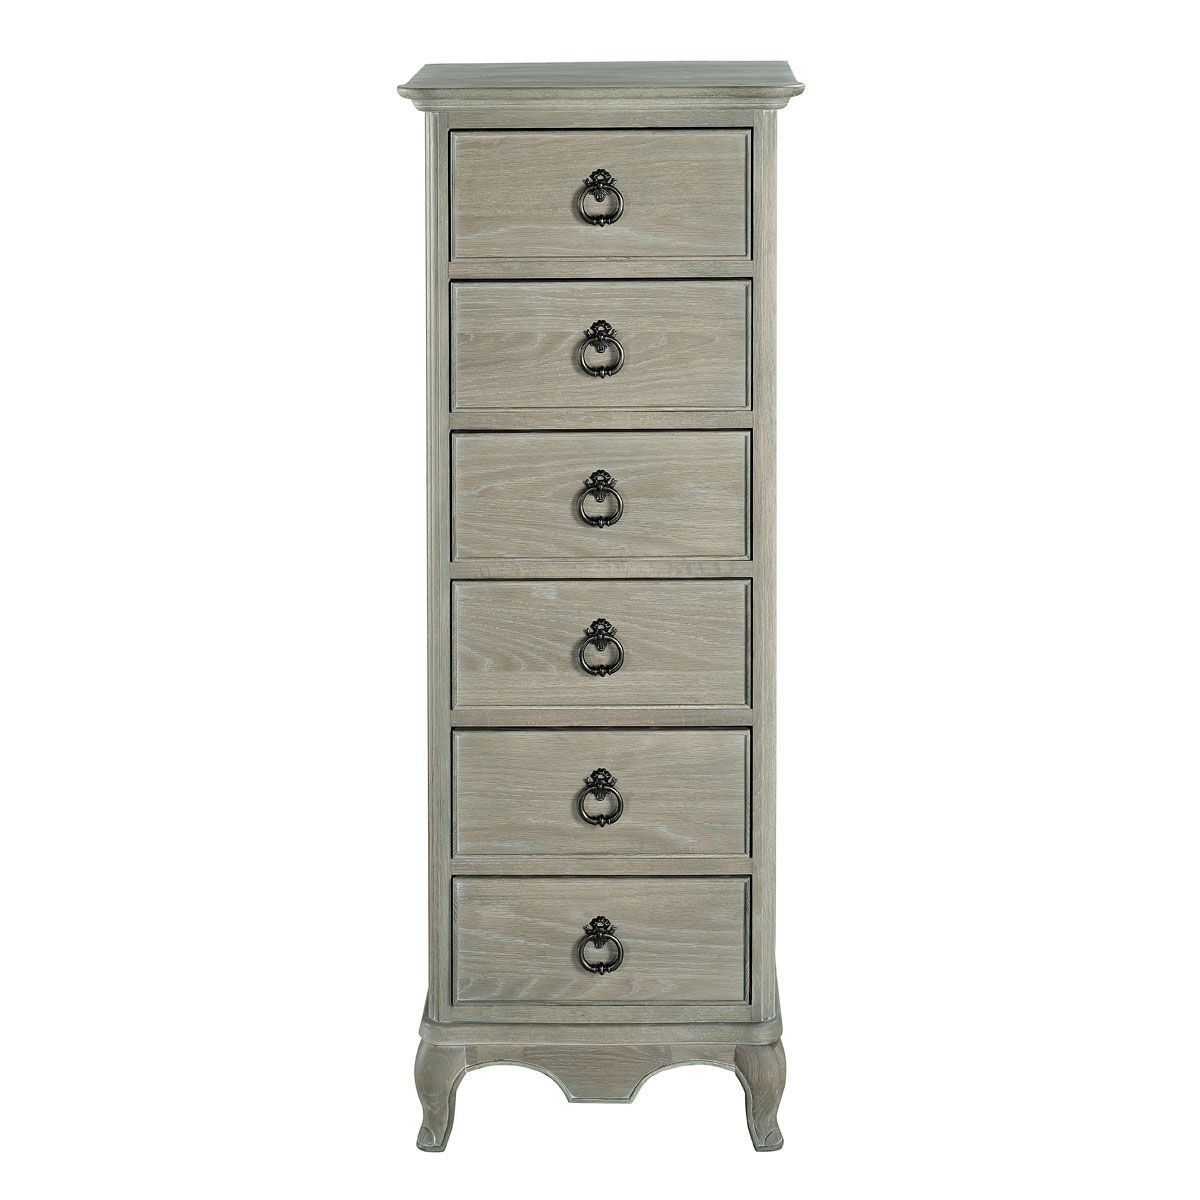 Willis Gambier Camille 6 Drawer Tall Chest Willis